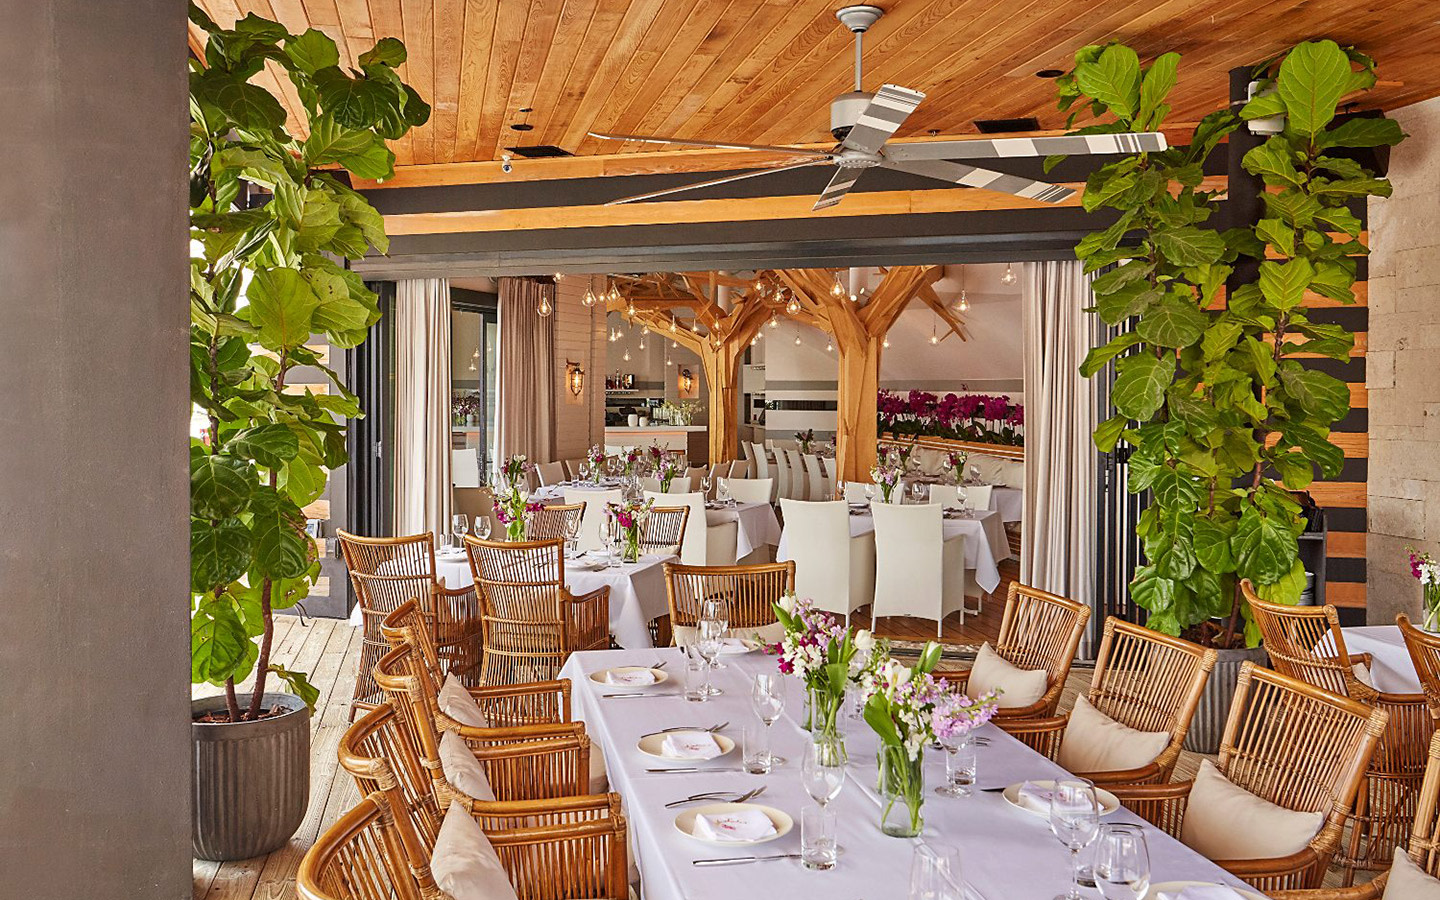 Best Outdoor Restaurants in Miami | Miami and Beaches - Miami and ...